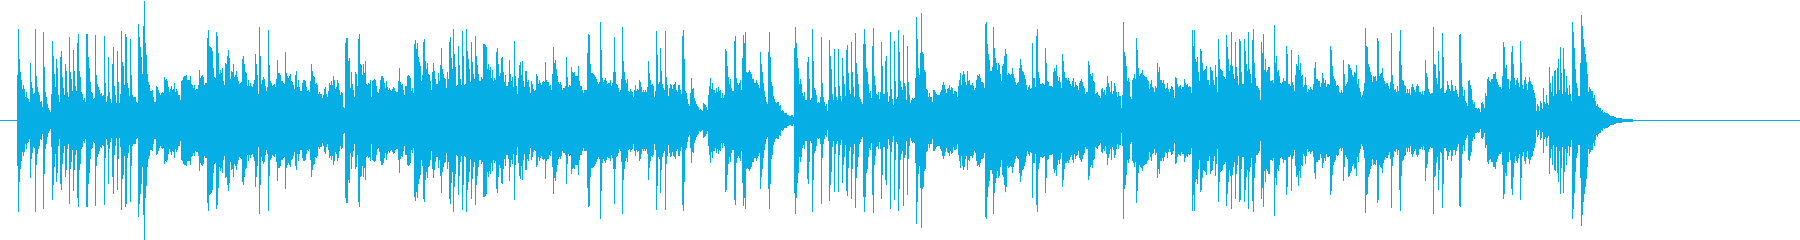 Neo China Music Style's reproduced waveform